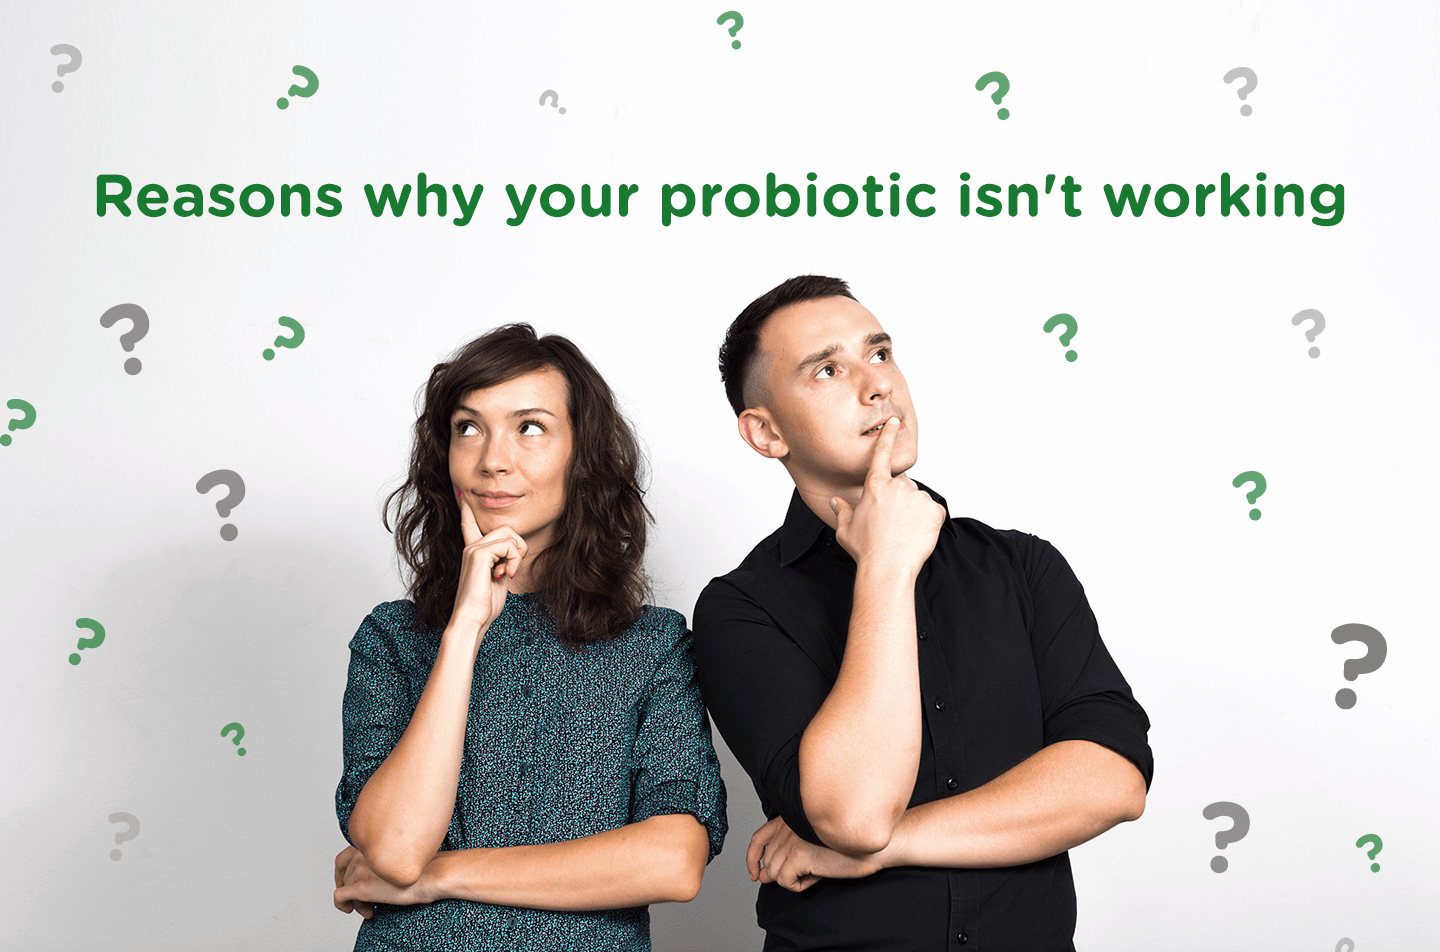 5 Reasons Why Your Probiotic Isn't Working